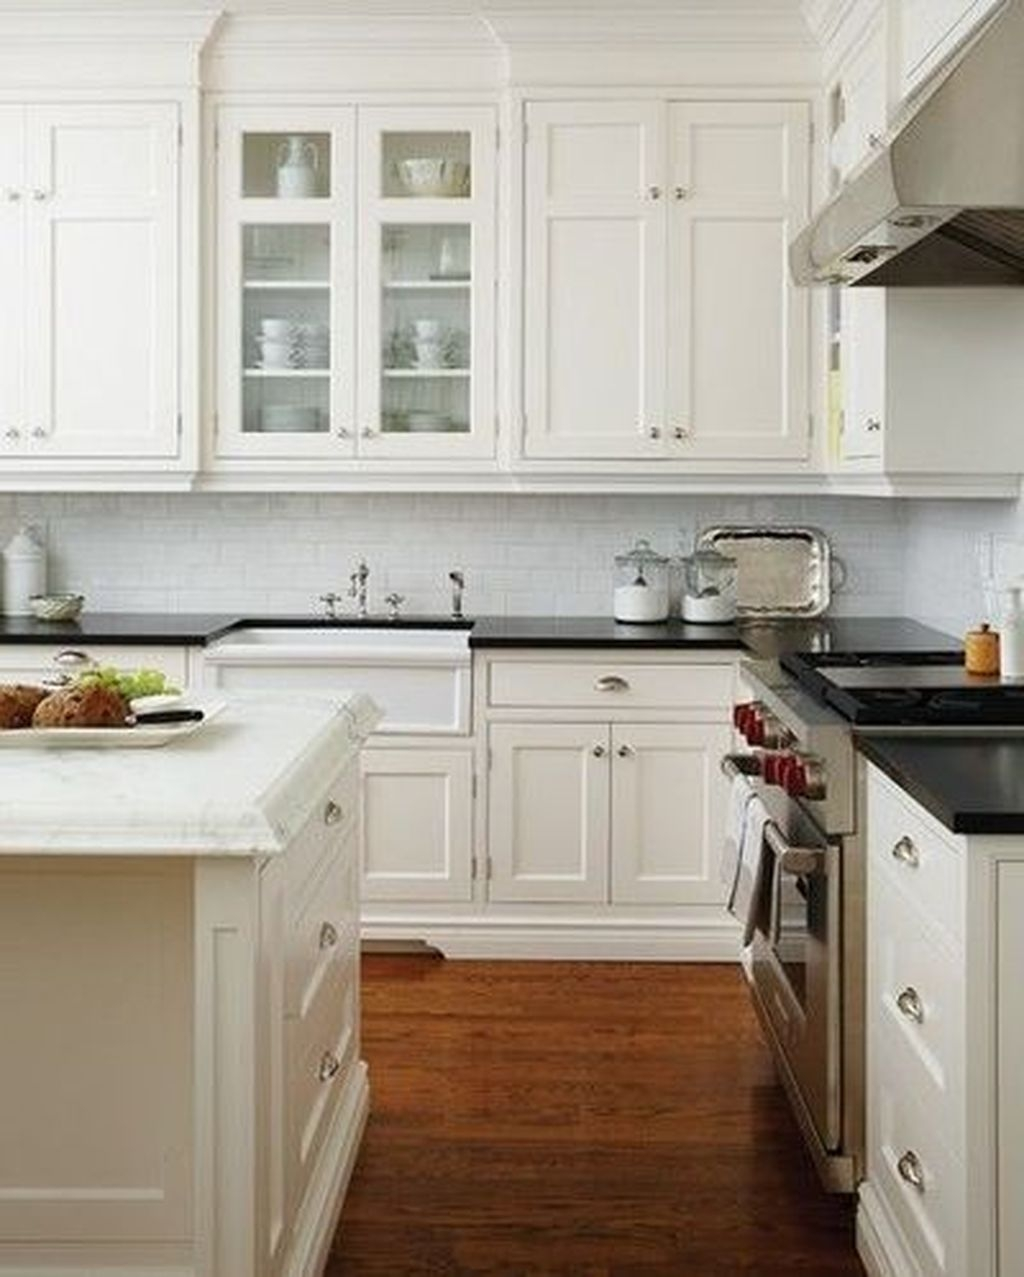 Simple Minimalist Small White Kitchen Design Ideas 17